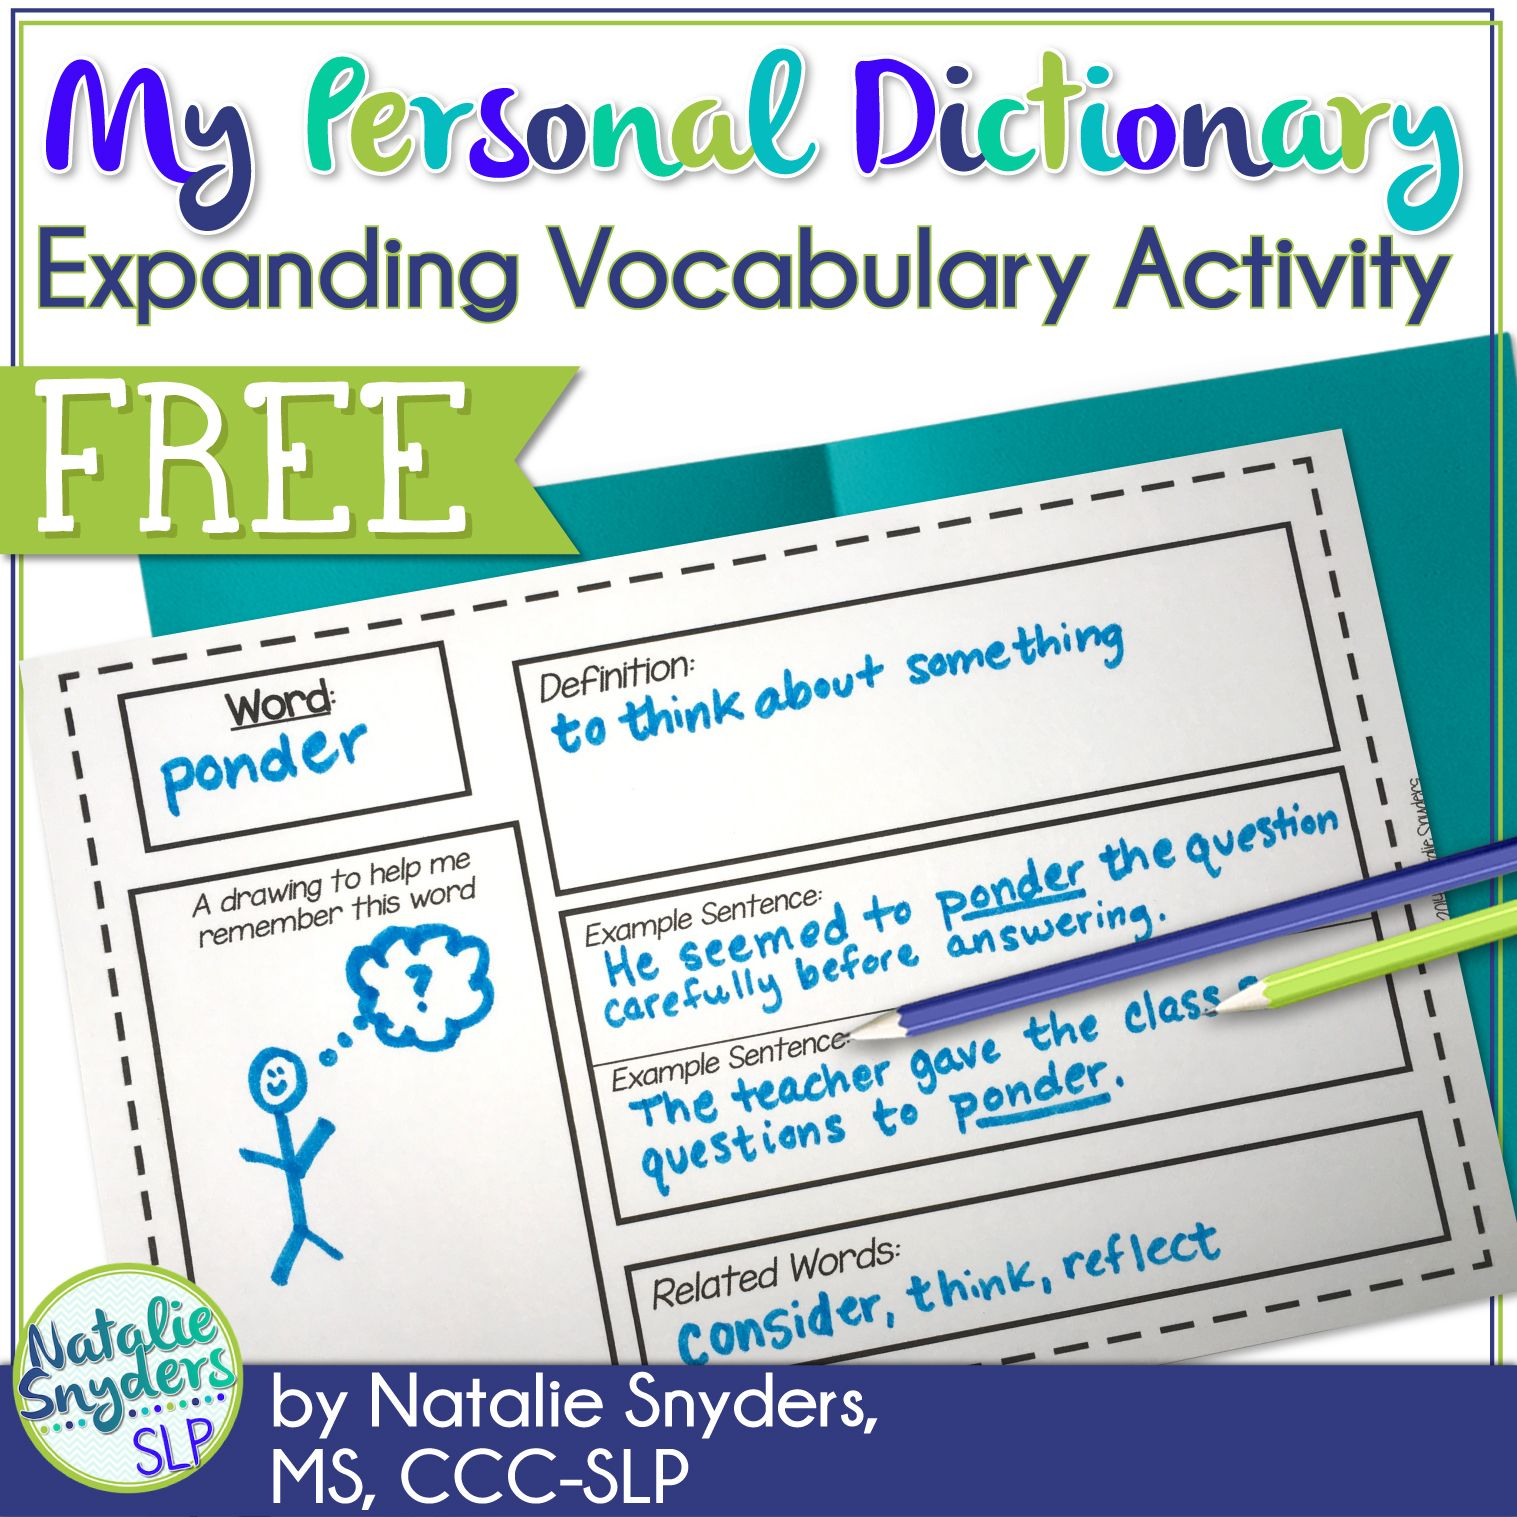 My Personal Dictionary An Expanding Vocabulary Activity